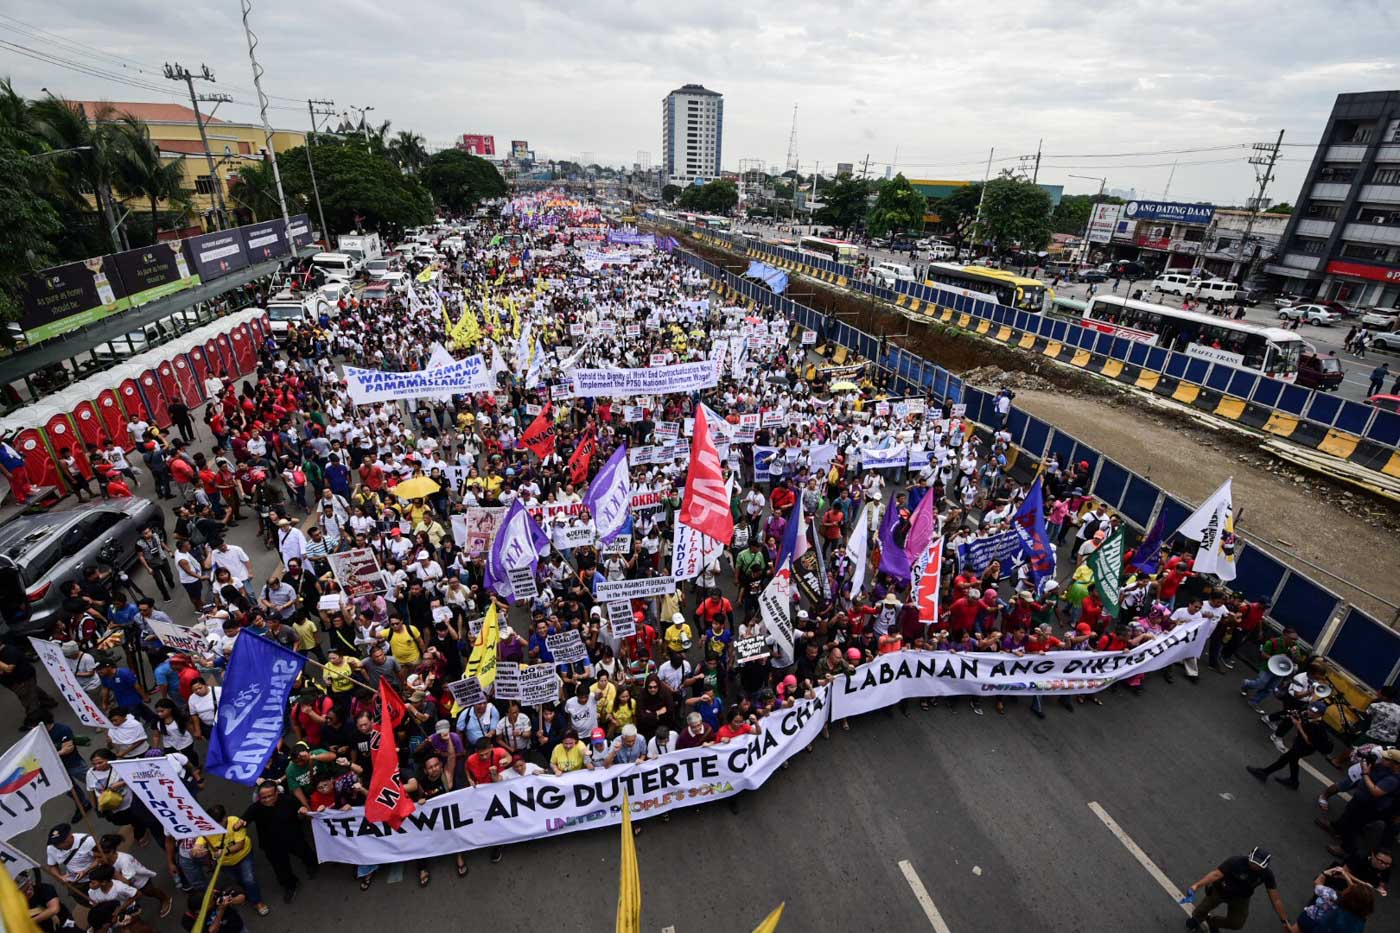 UNITED PEOPLE'S SONA. Protesters march towards Batasan along Commonwealth Ave., Quezon City during President Duterteu00e2u0080u0099s 3rd State Of The Nation Address. Photo by Alecs Ongcal/Rappler